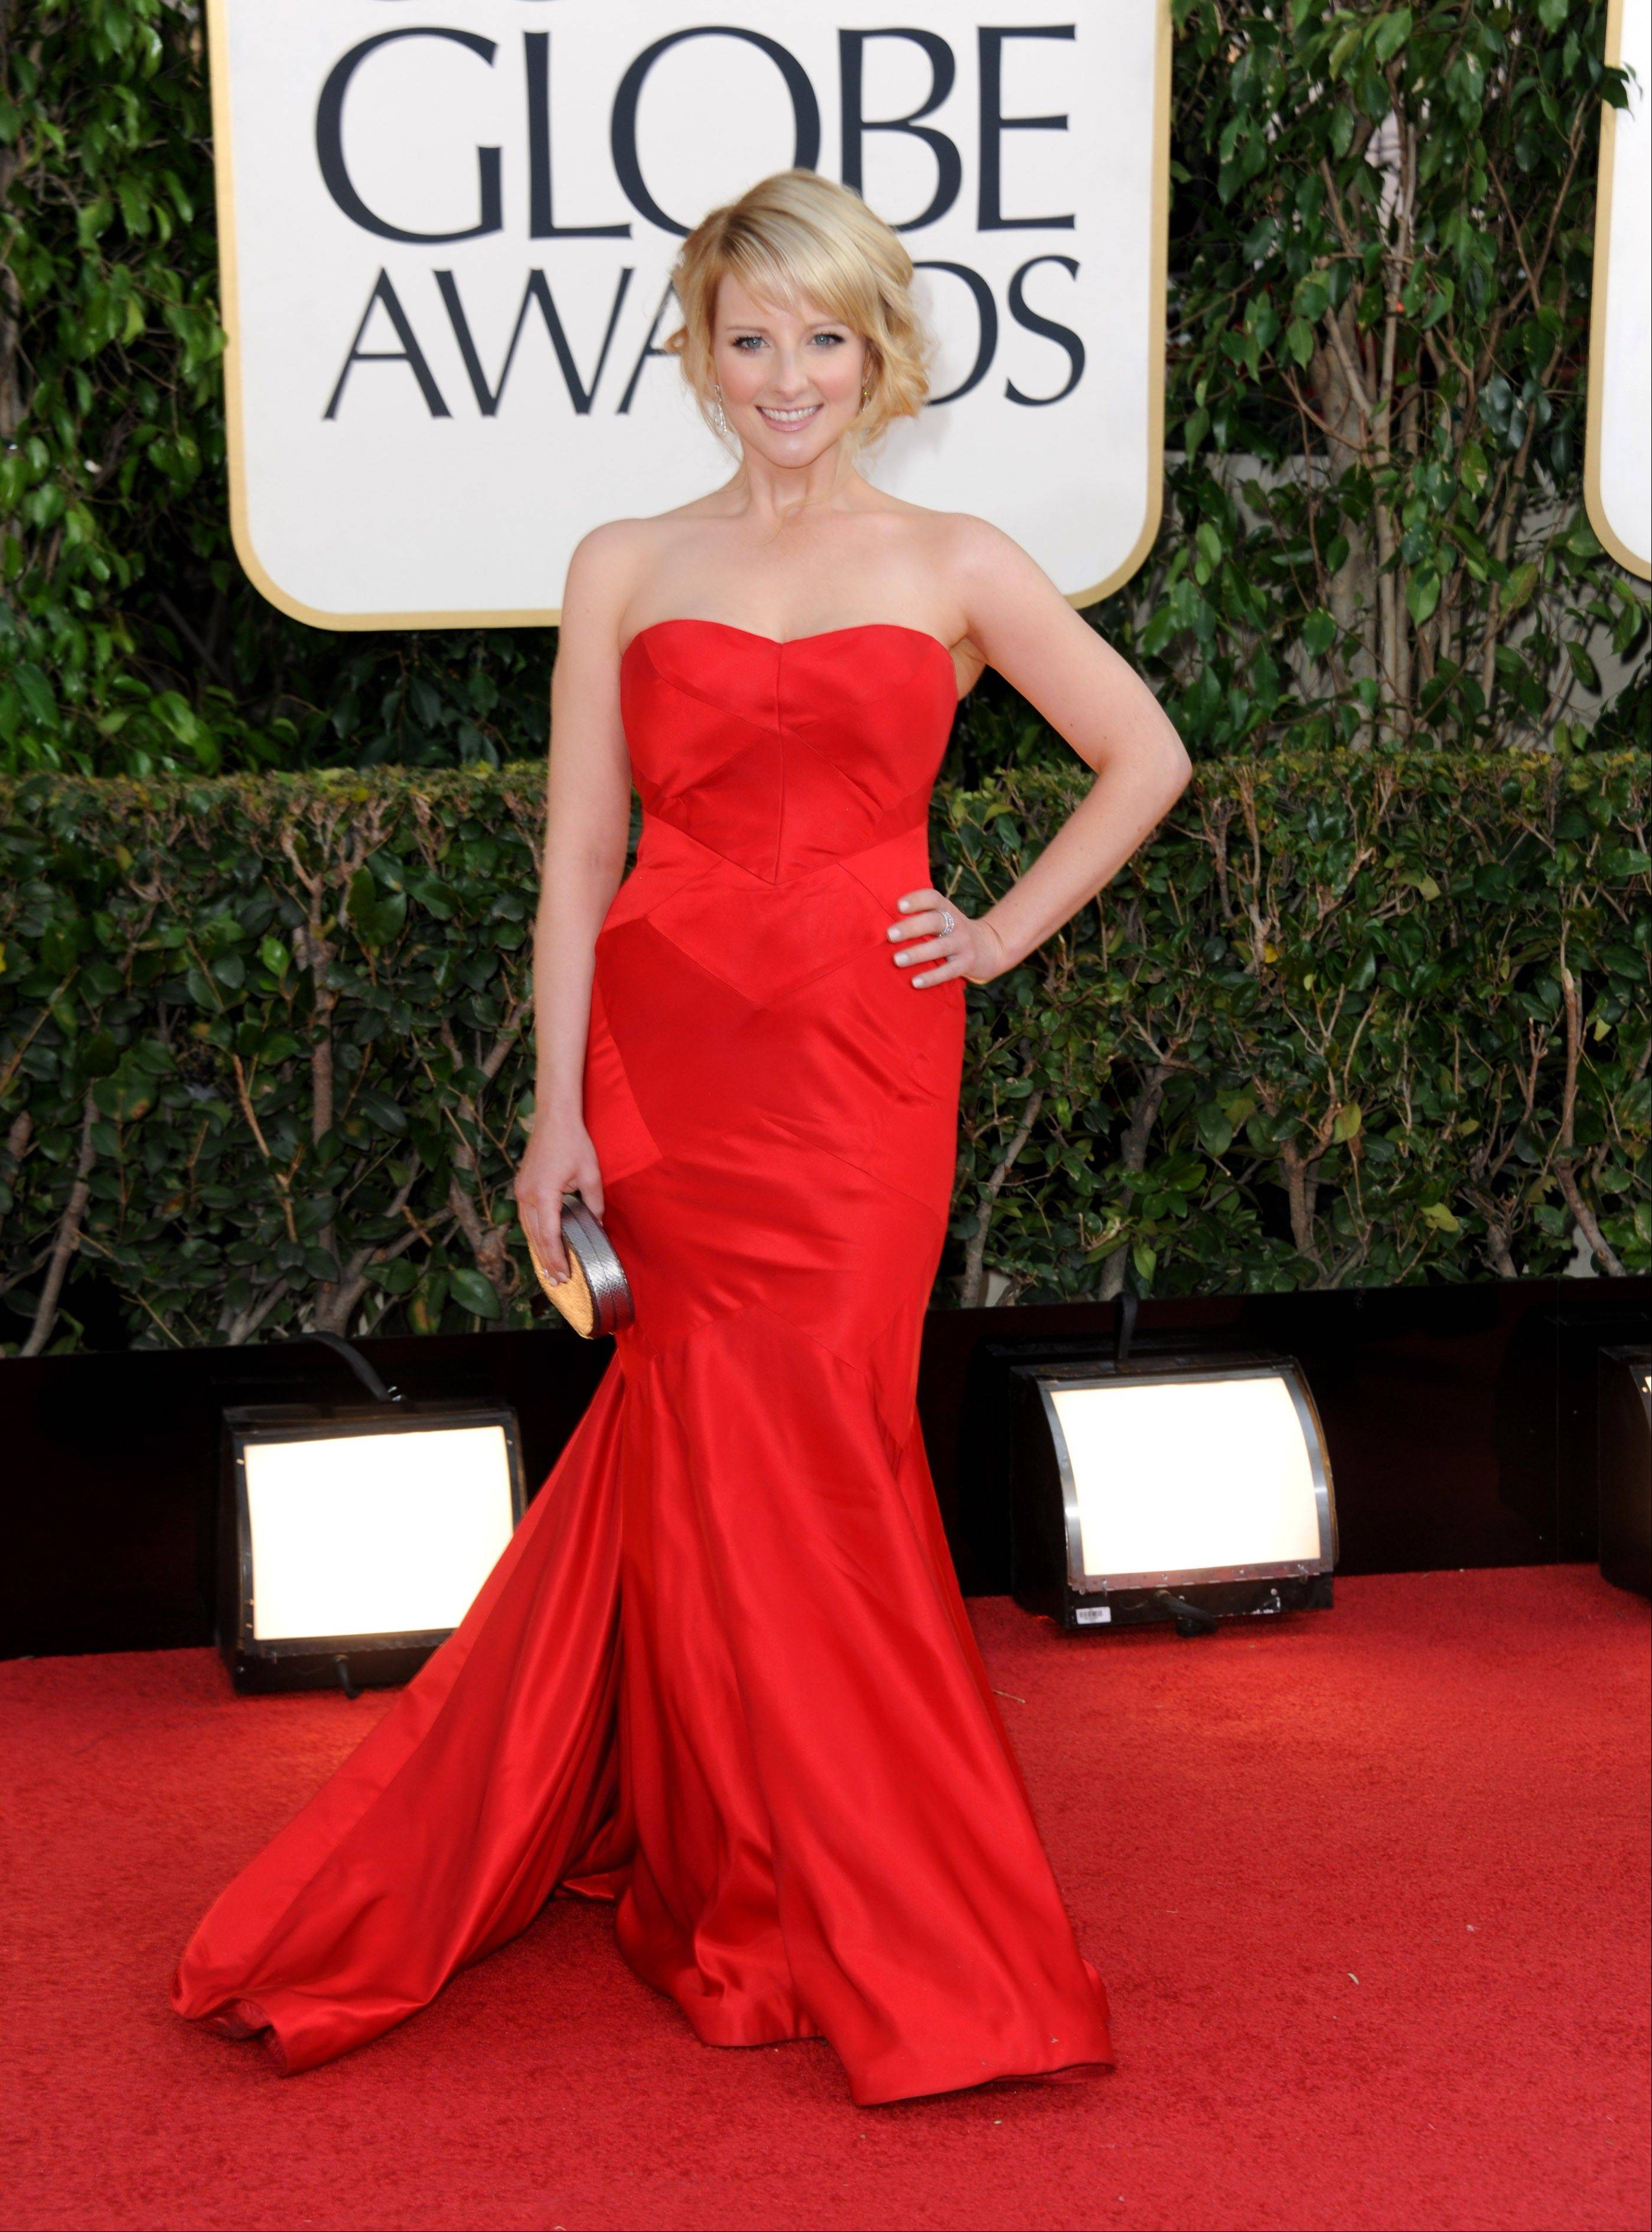 Actress Melissa Rauch arrives at the 70th Annual Golden Globe Awards at the Beverly Hilton Hotel on Sunday Jan. 13, 2013, in Beverly Hills, Calif.